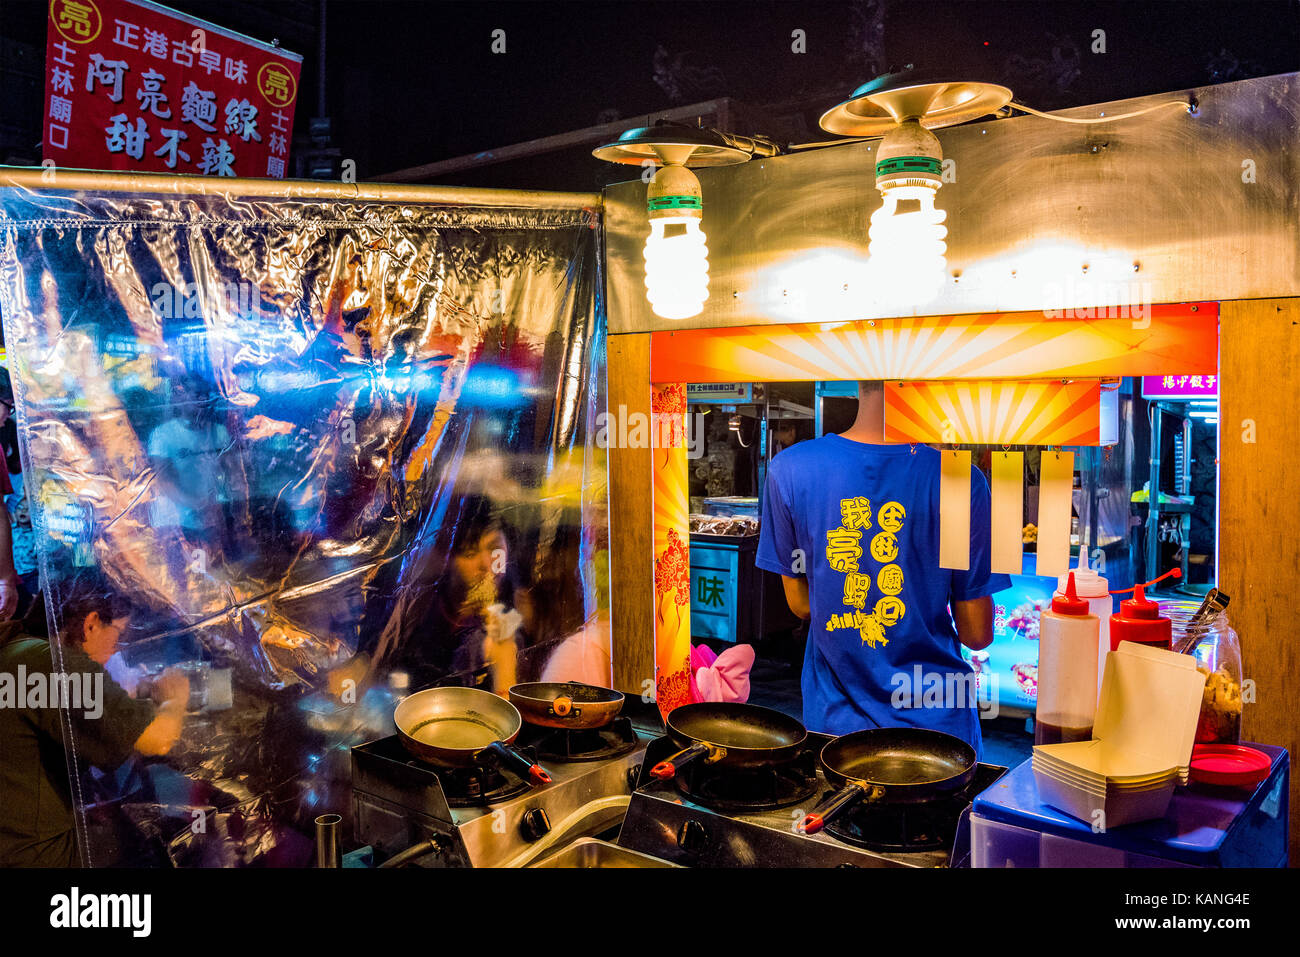 TAIPEI, TAIWAN - JULY 11: This is a night market food stand